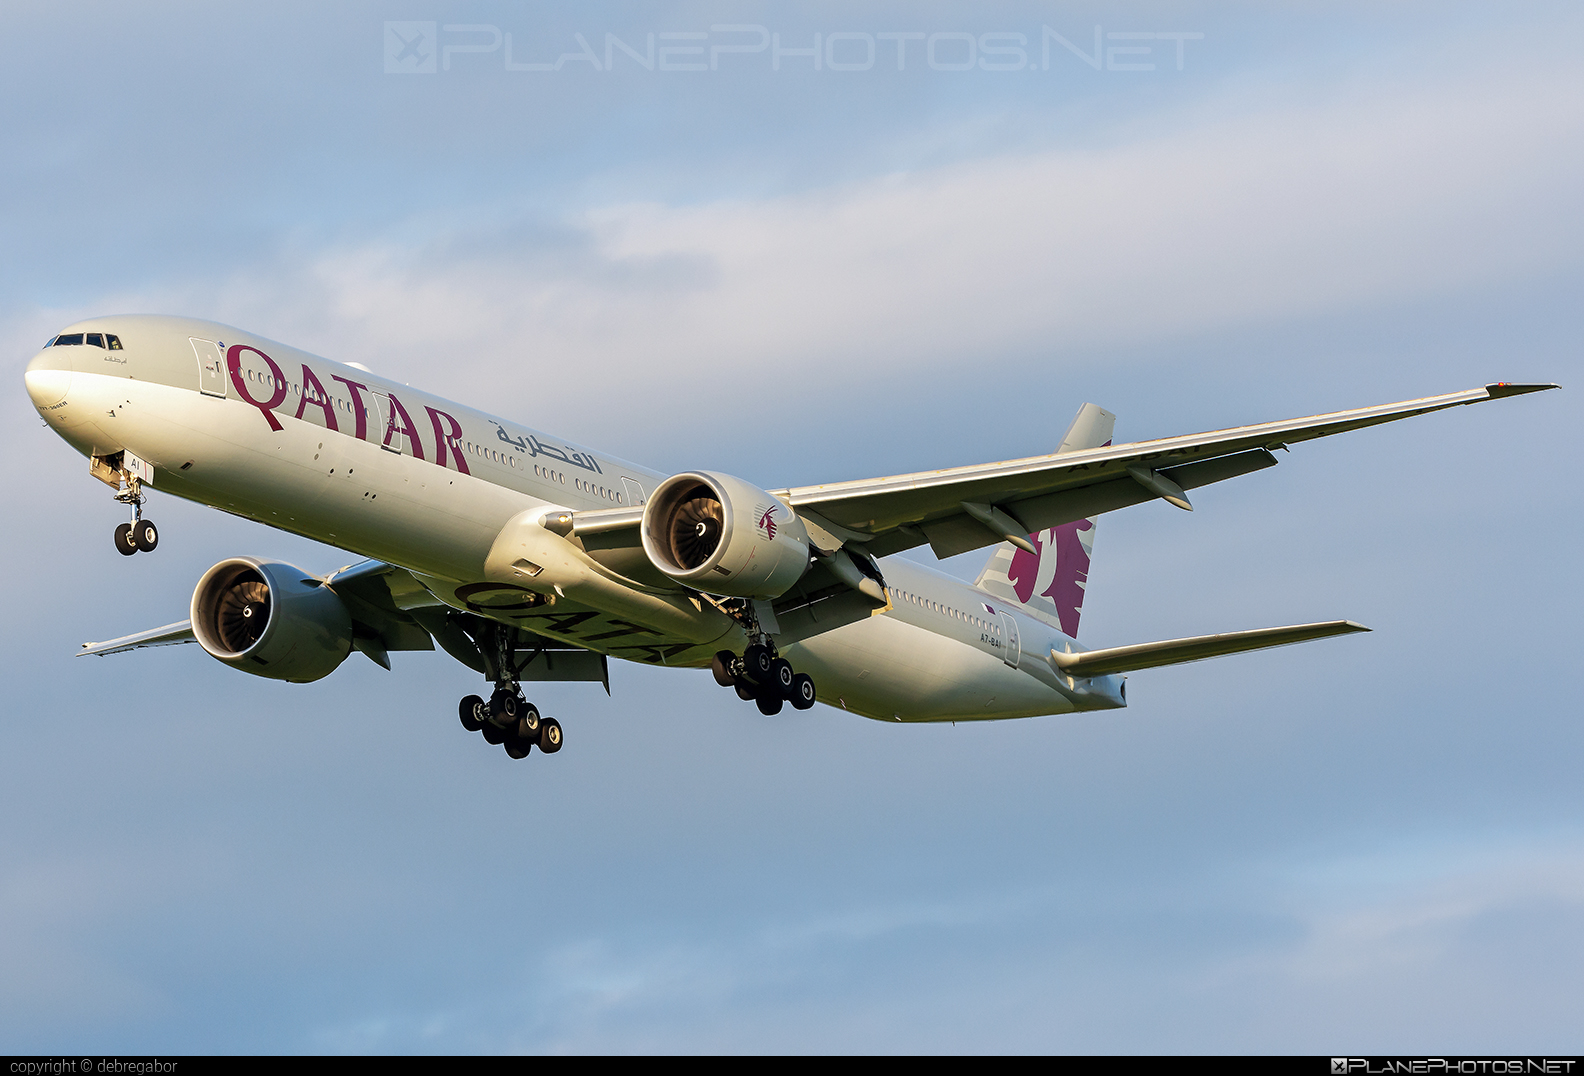 Boeing 777-300ER - A7-BAI operated by Qatar Airways #b777 #b777er #boeing #boeing777 #qatarairways #tripleseven